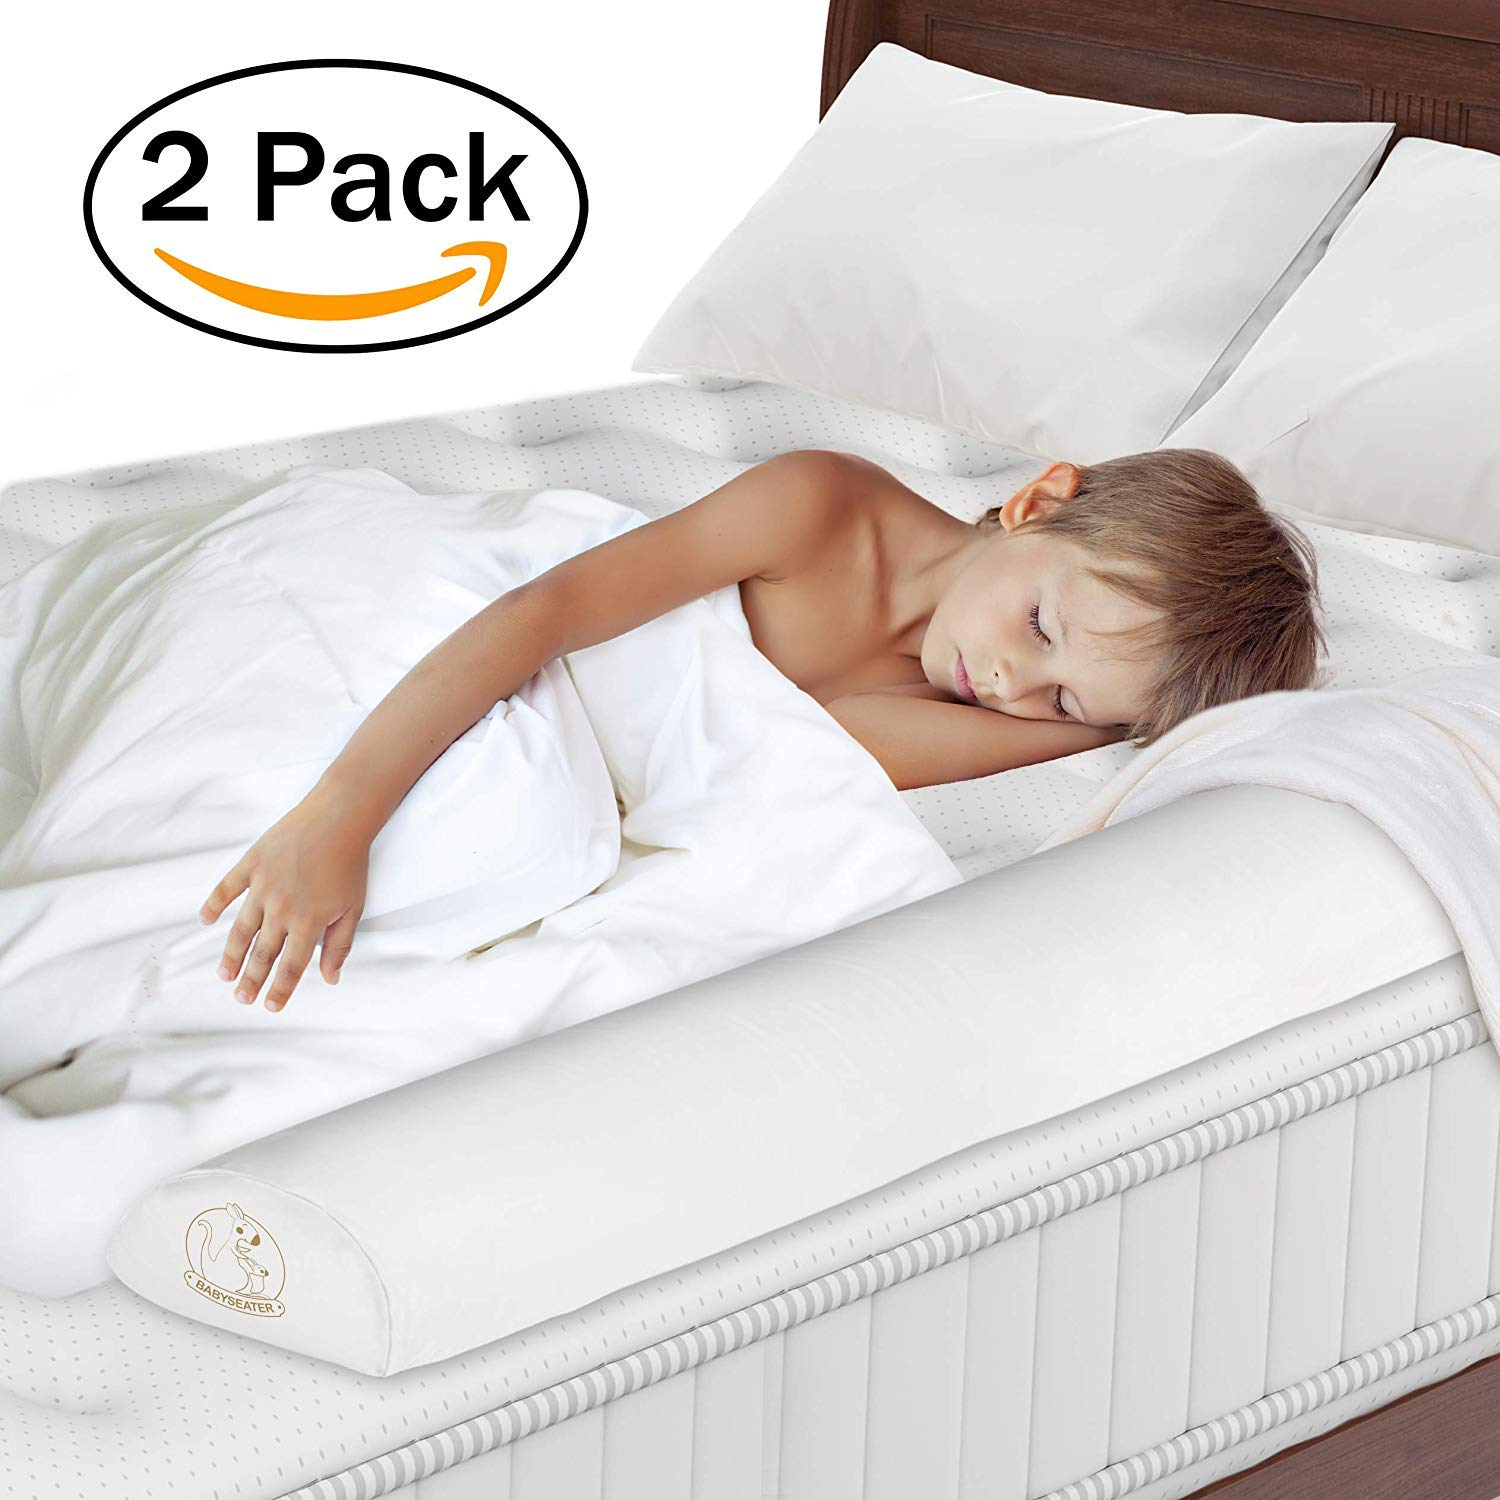 Toddler Bed Rail - Non-Toxic, Water-Resistant Foam Toddler Bed Rail bumper Guard Provides Safety and Reassurance - White, Machine Washable Cover- Non-Slip Side Bed Rail for Kids + Travel Case (2 Pack)